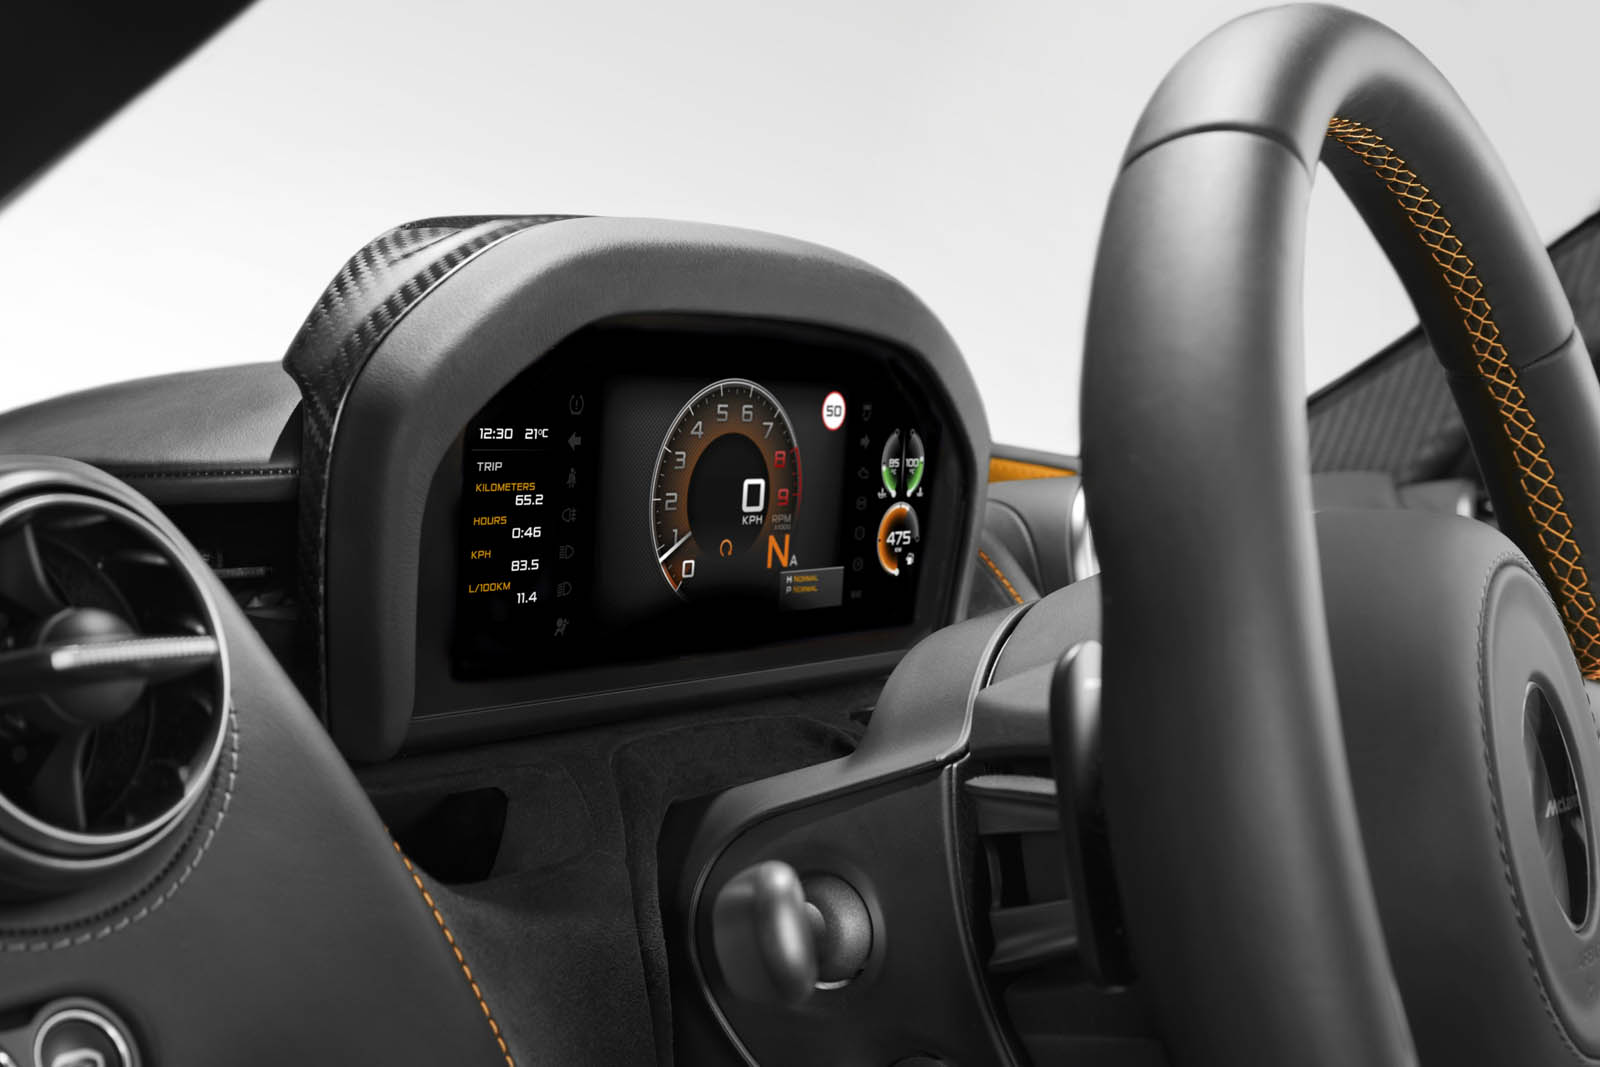 P14 Folding Driver Display Image Up_final_release date 010317 copy